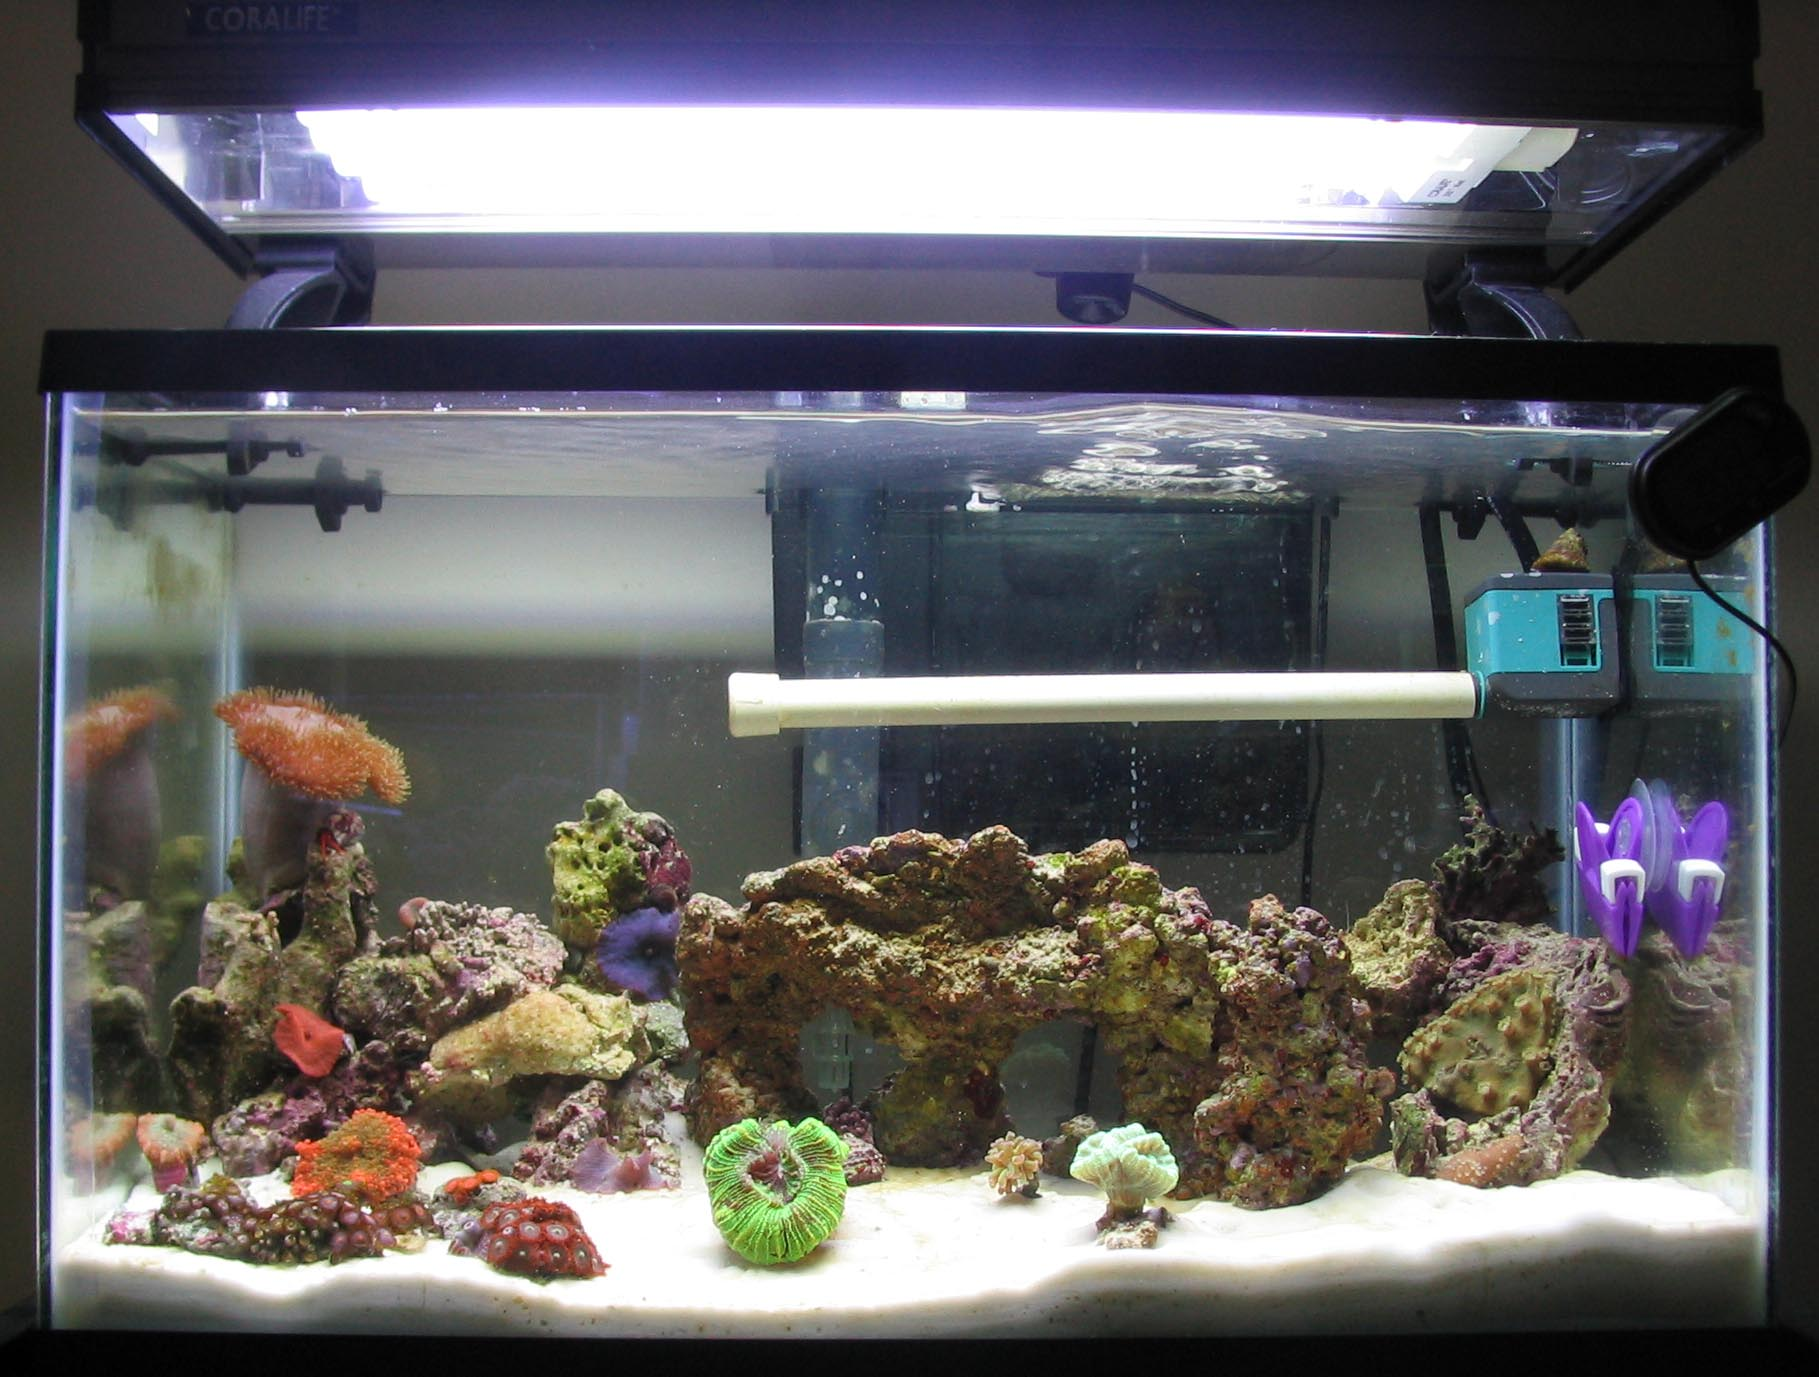 Saltwater fish tank 10 gallon 10g reef saltwater for Fish for a 10 gallon tank